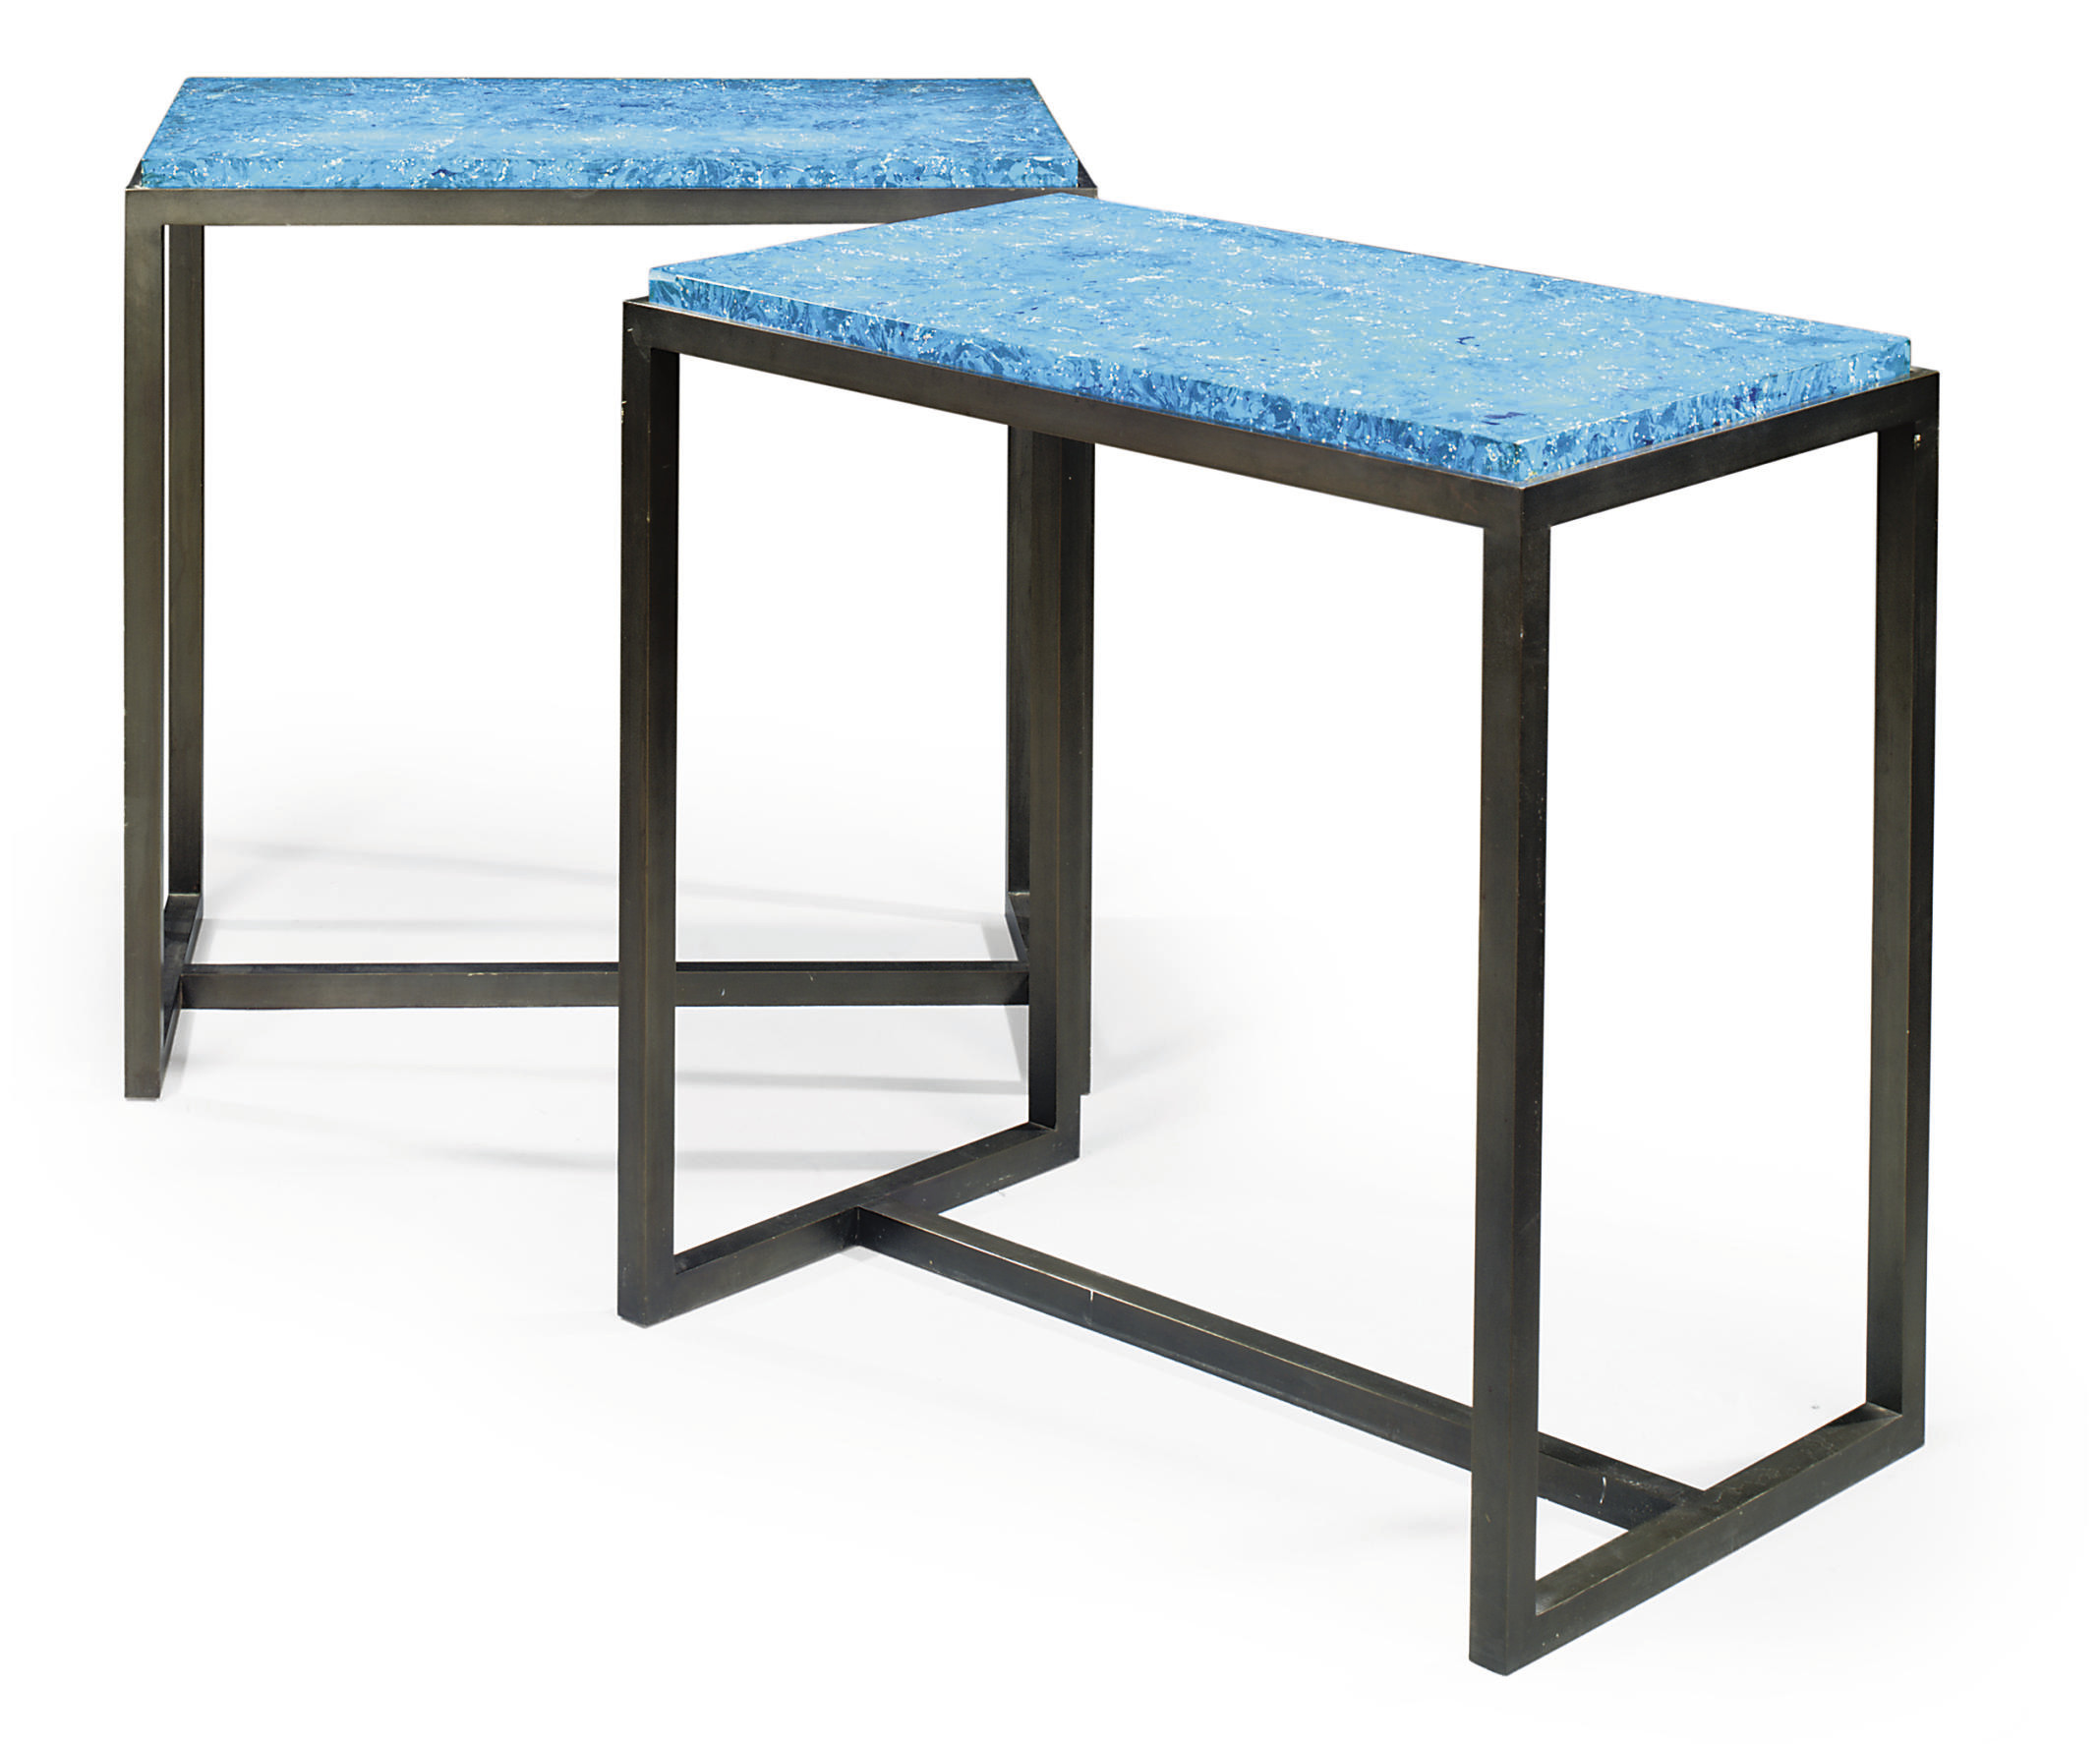 A PAIR OF BLACKENED STEEL AND SCAGLIOLA SIDE TABLES